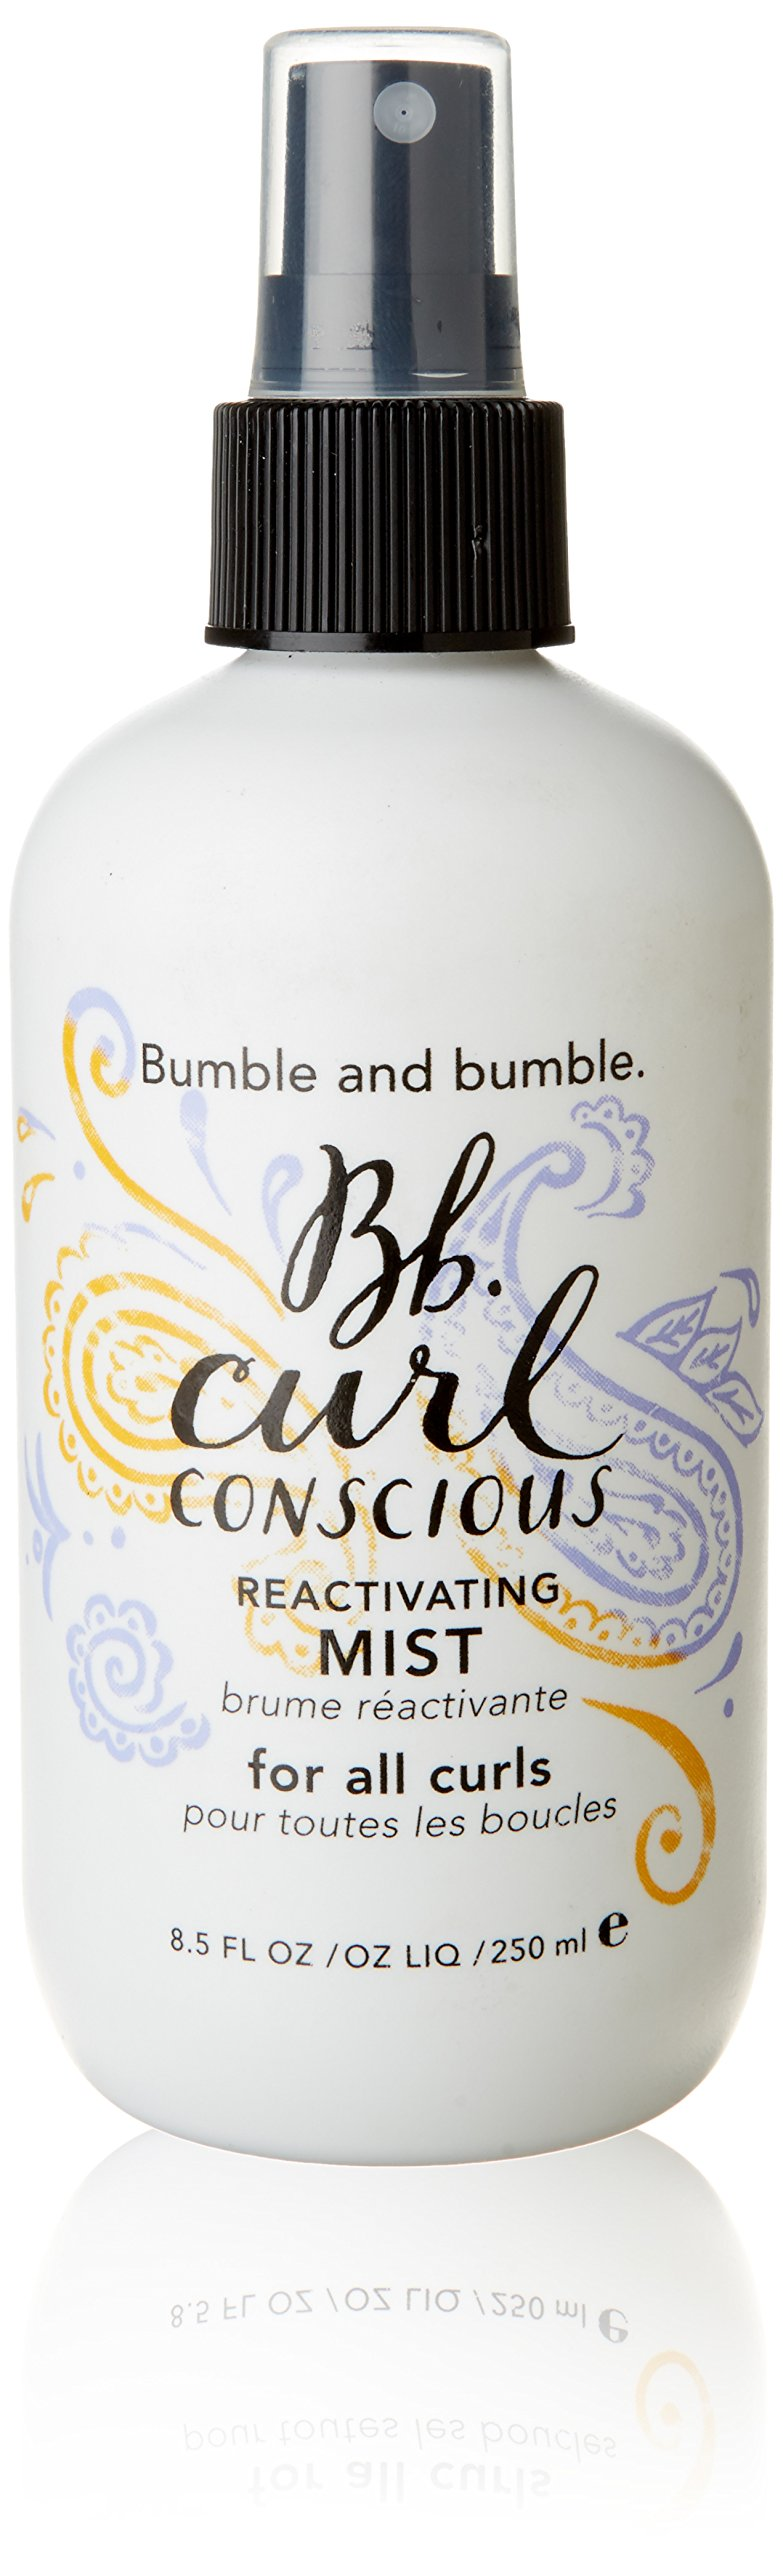 Bumble and Bumble Curl Conscious Reactivating Mist 8.5 oz